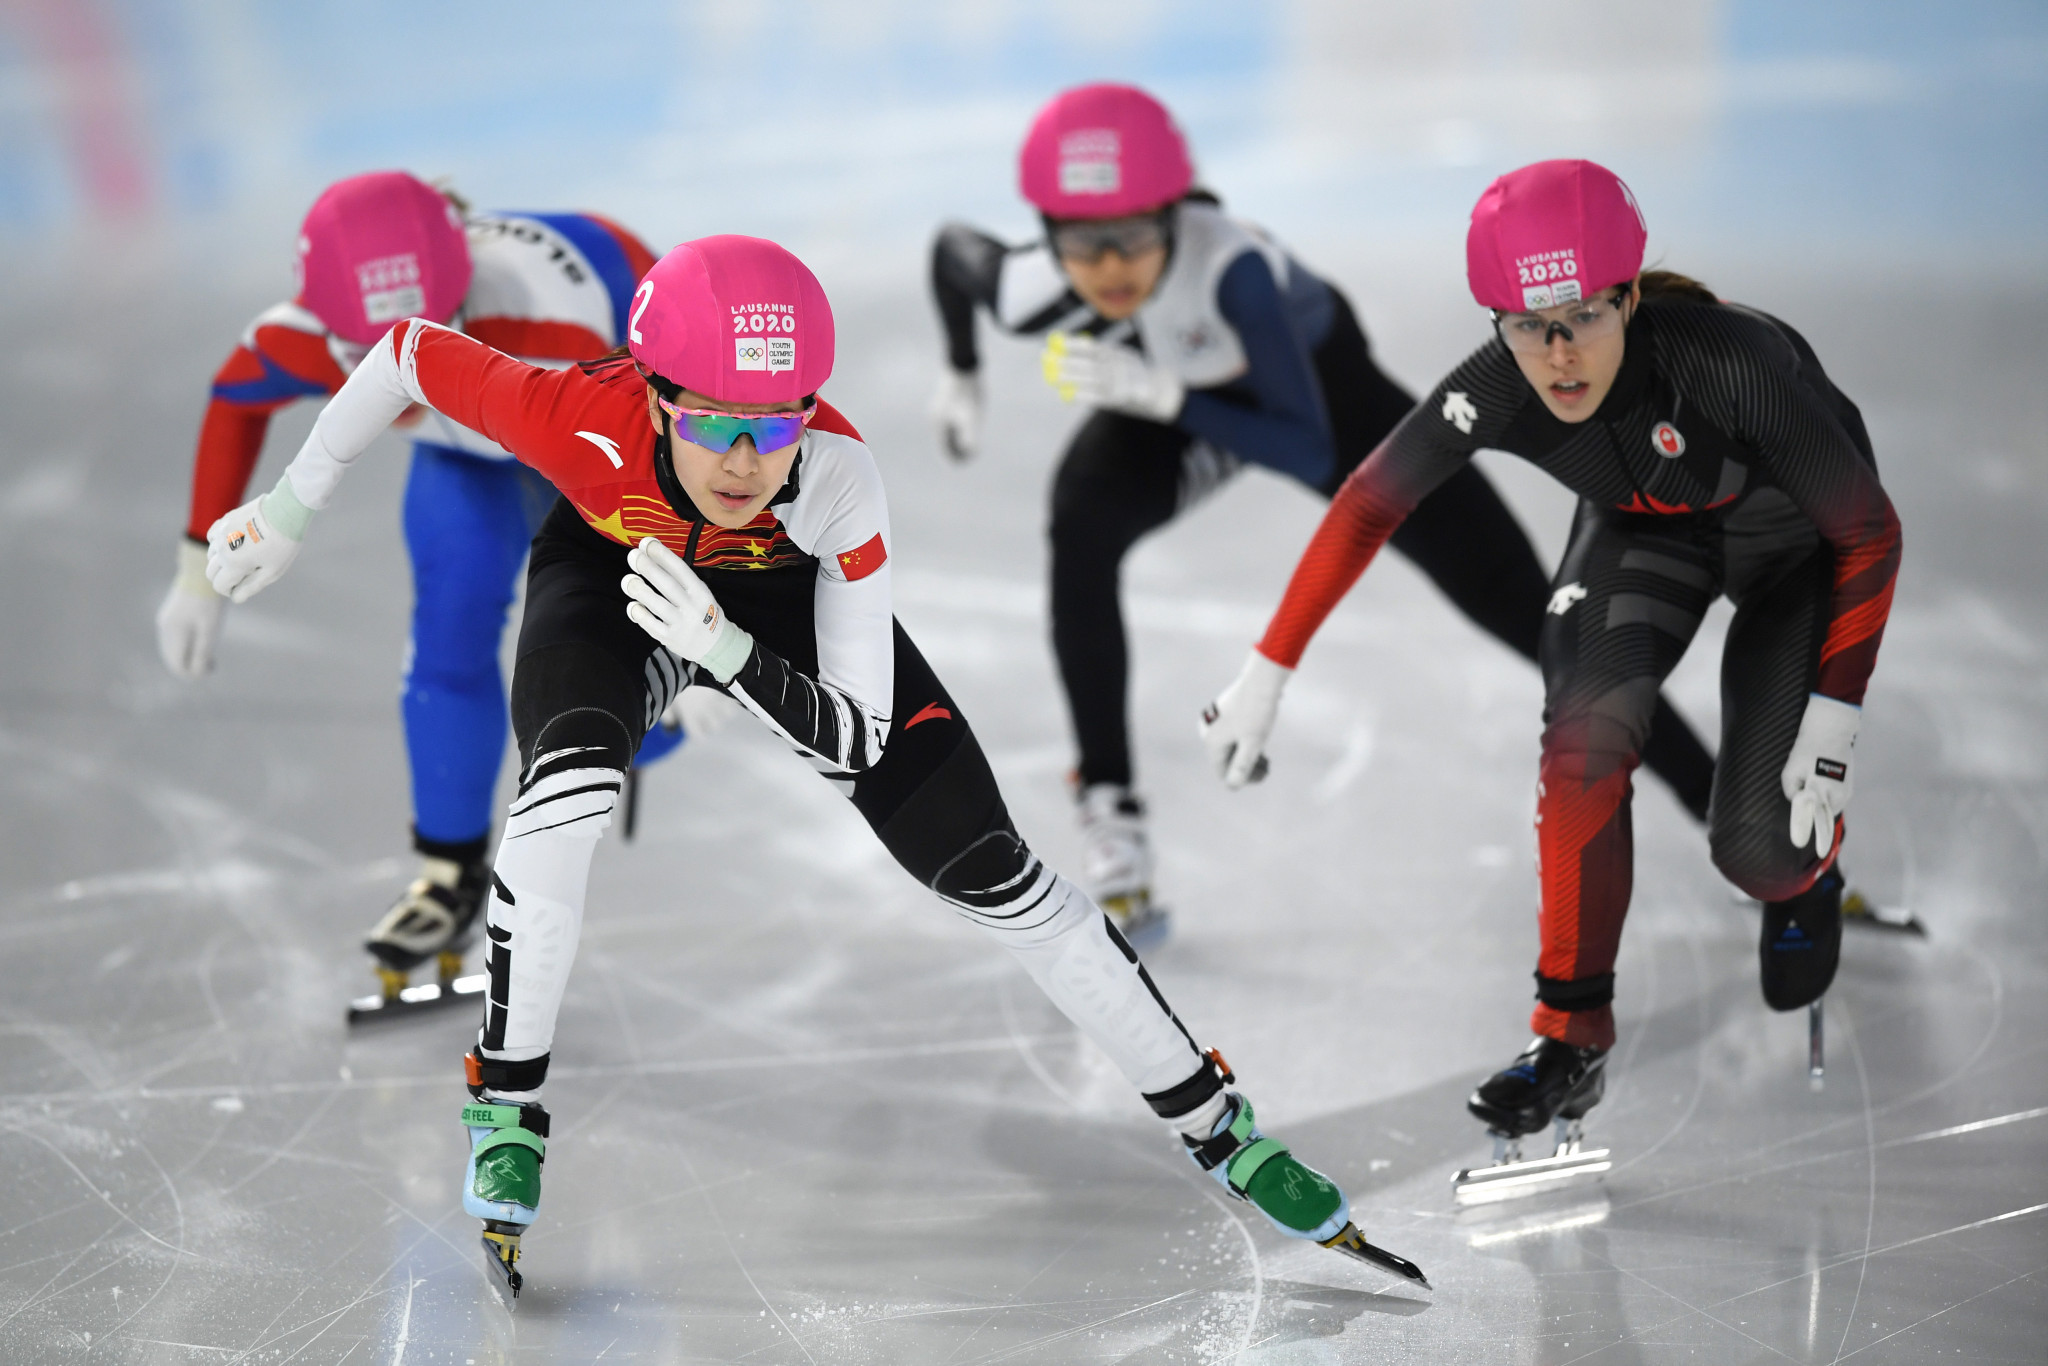 South Korea bag three golds on second day of ISU World Junior Short Track Speed Skating Championships